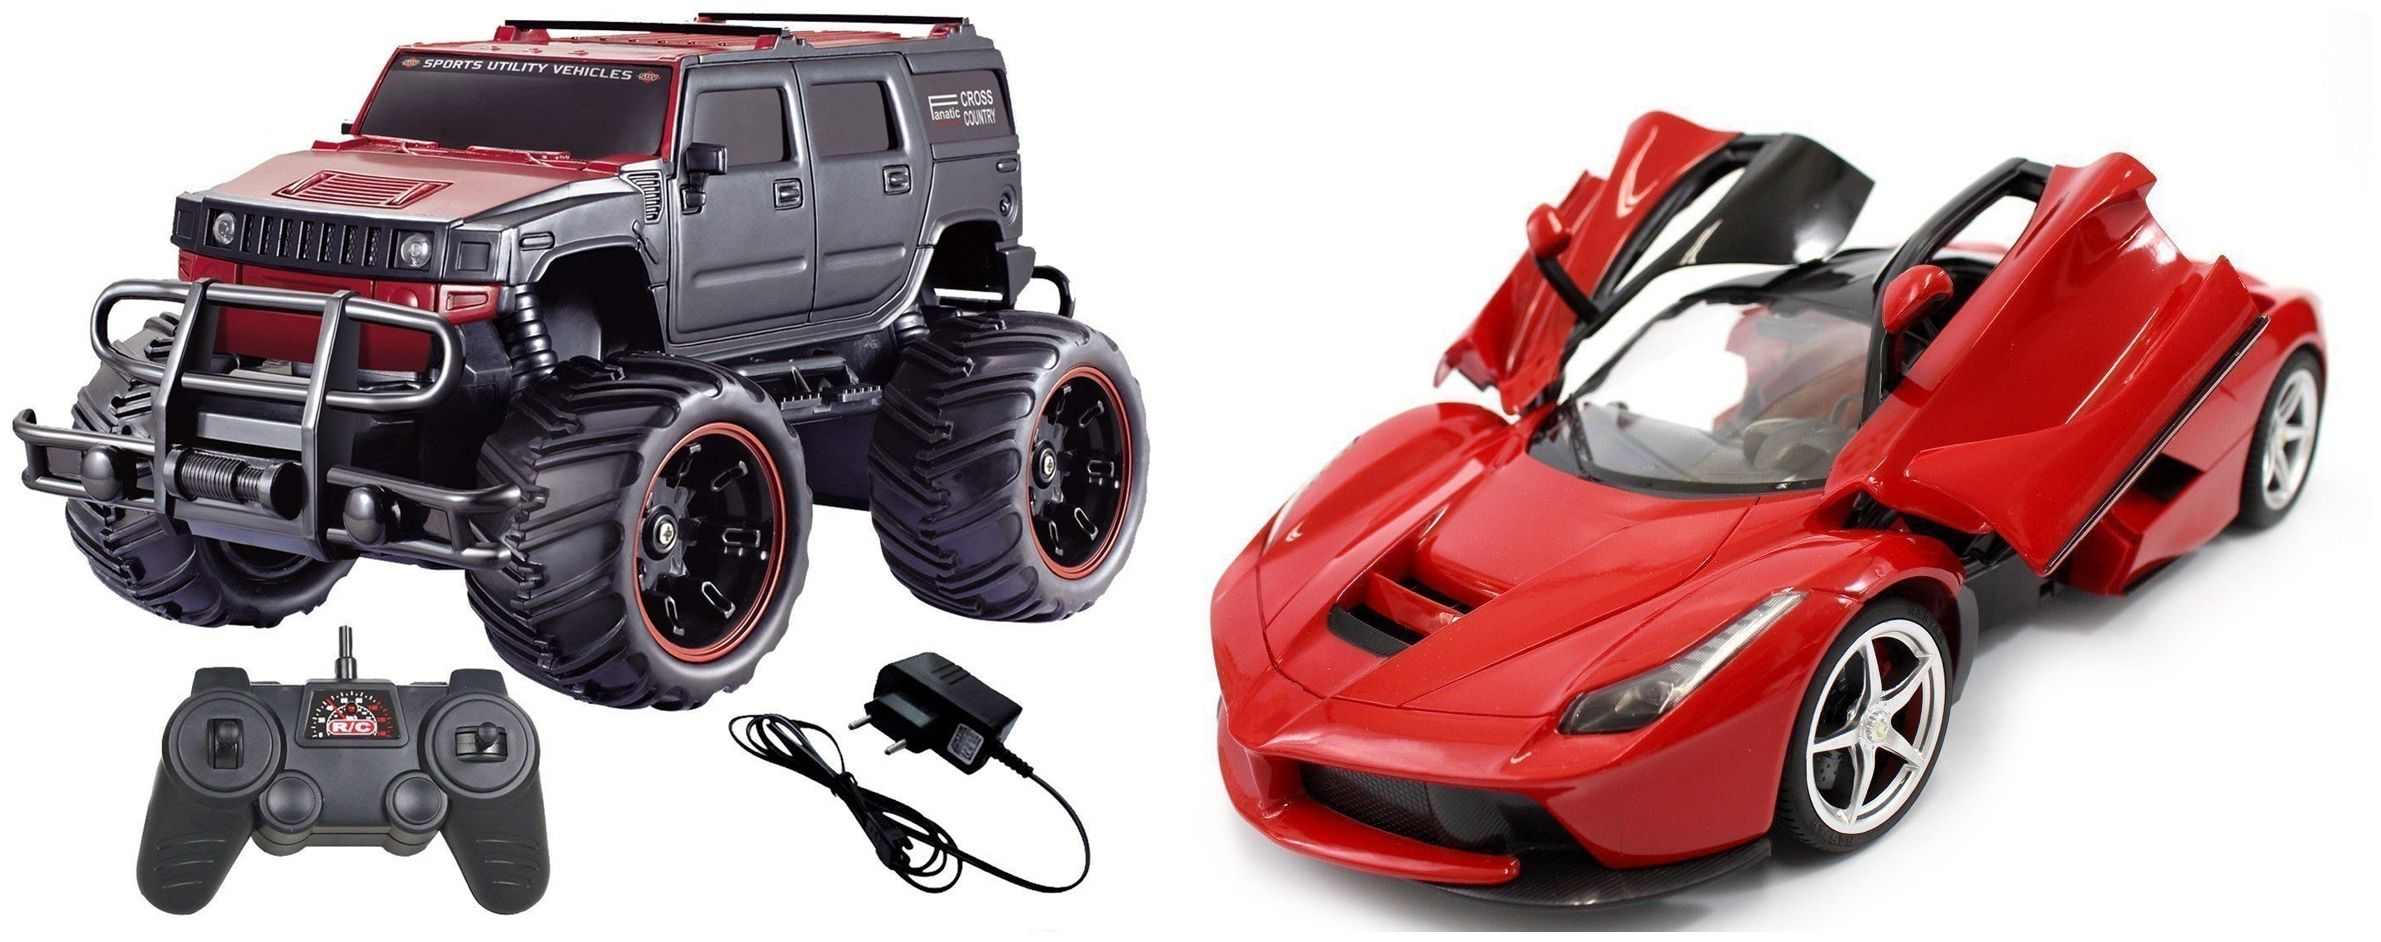 Best Remote Controlled Toy Car Brands In India Market Toy Car Best Rc Cars Rc Cars